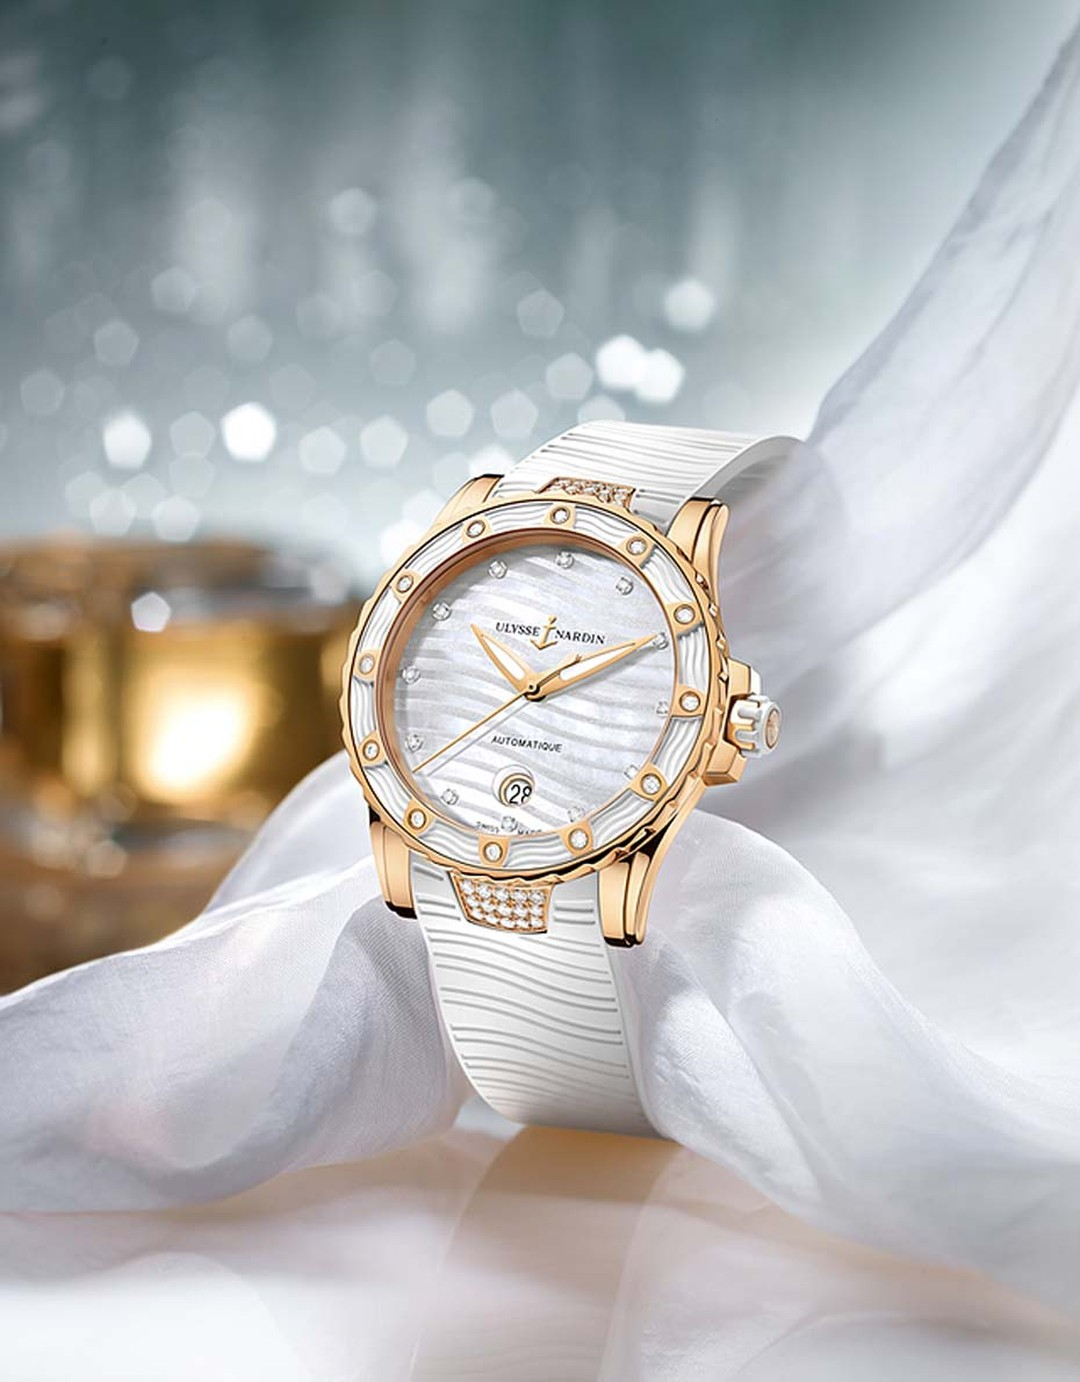 Ulysse Nardin's Lady Diver, in a 40mm rose gold case, is a dive watch capable of depths of up to 100m and is equipped with a white unidirectional rotating bezel and a screw-down safety crown.